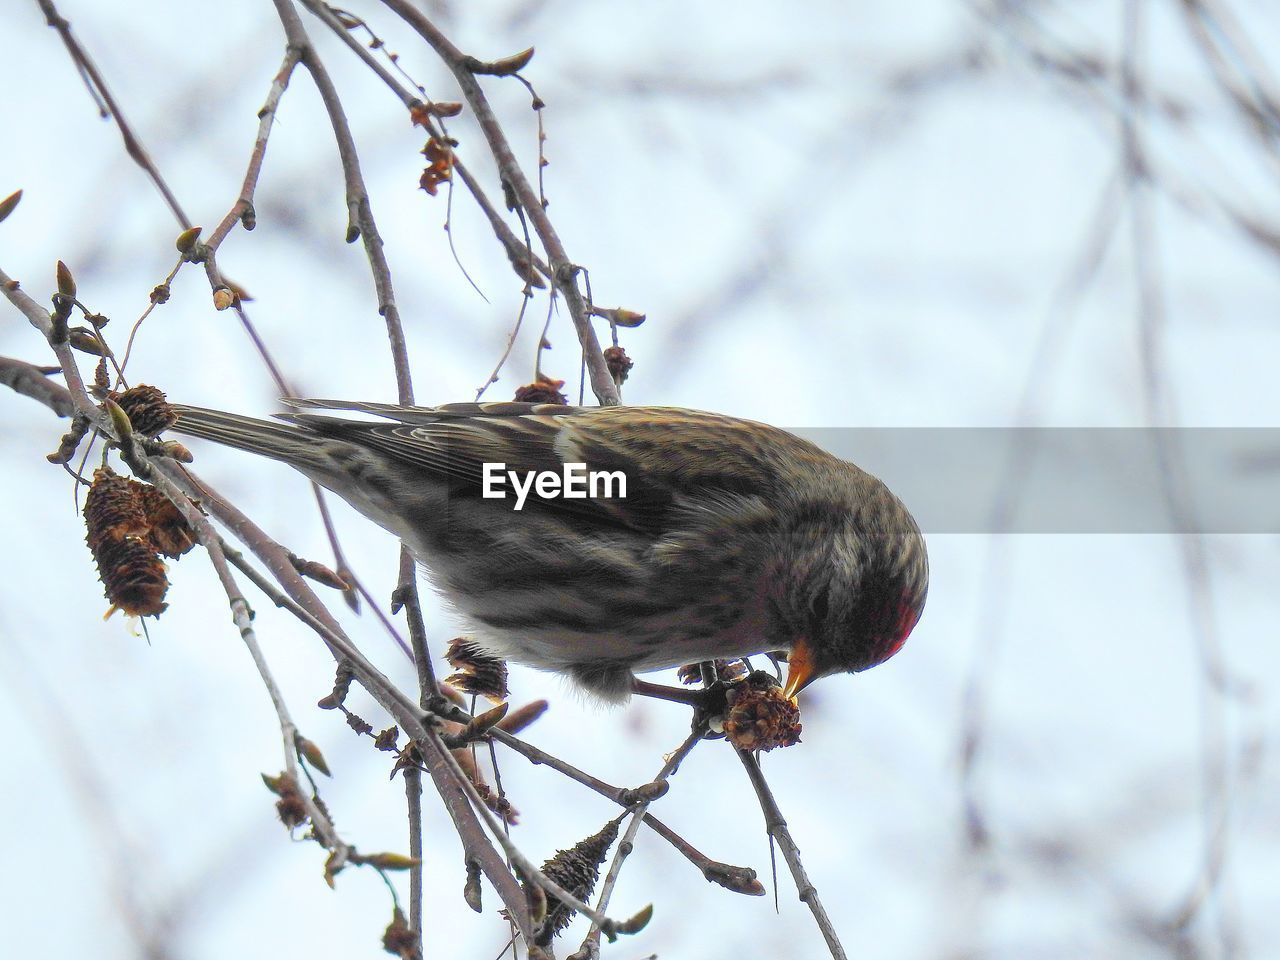 one animal, bird, focus on foreground, branch, animal themes, animal wildlife, nature, animals in the wild, perching, day, no people, outdoors, sparrow, close-up, winter, full length, tree, beauty in nature